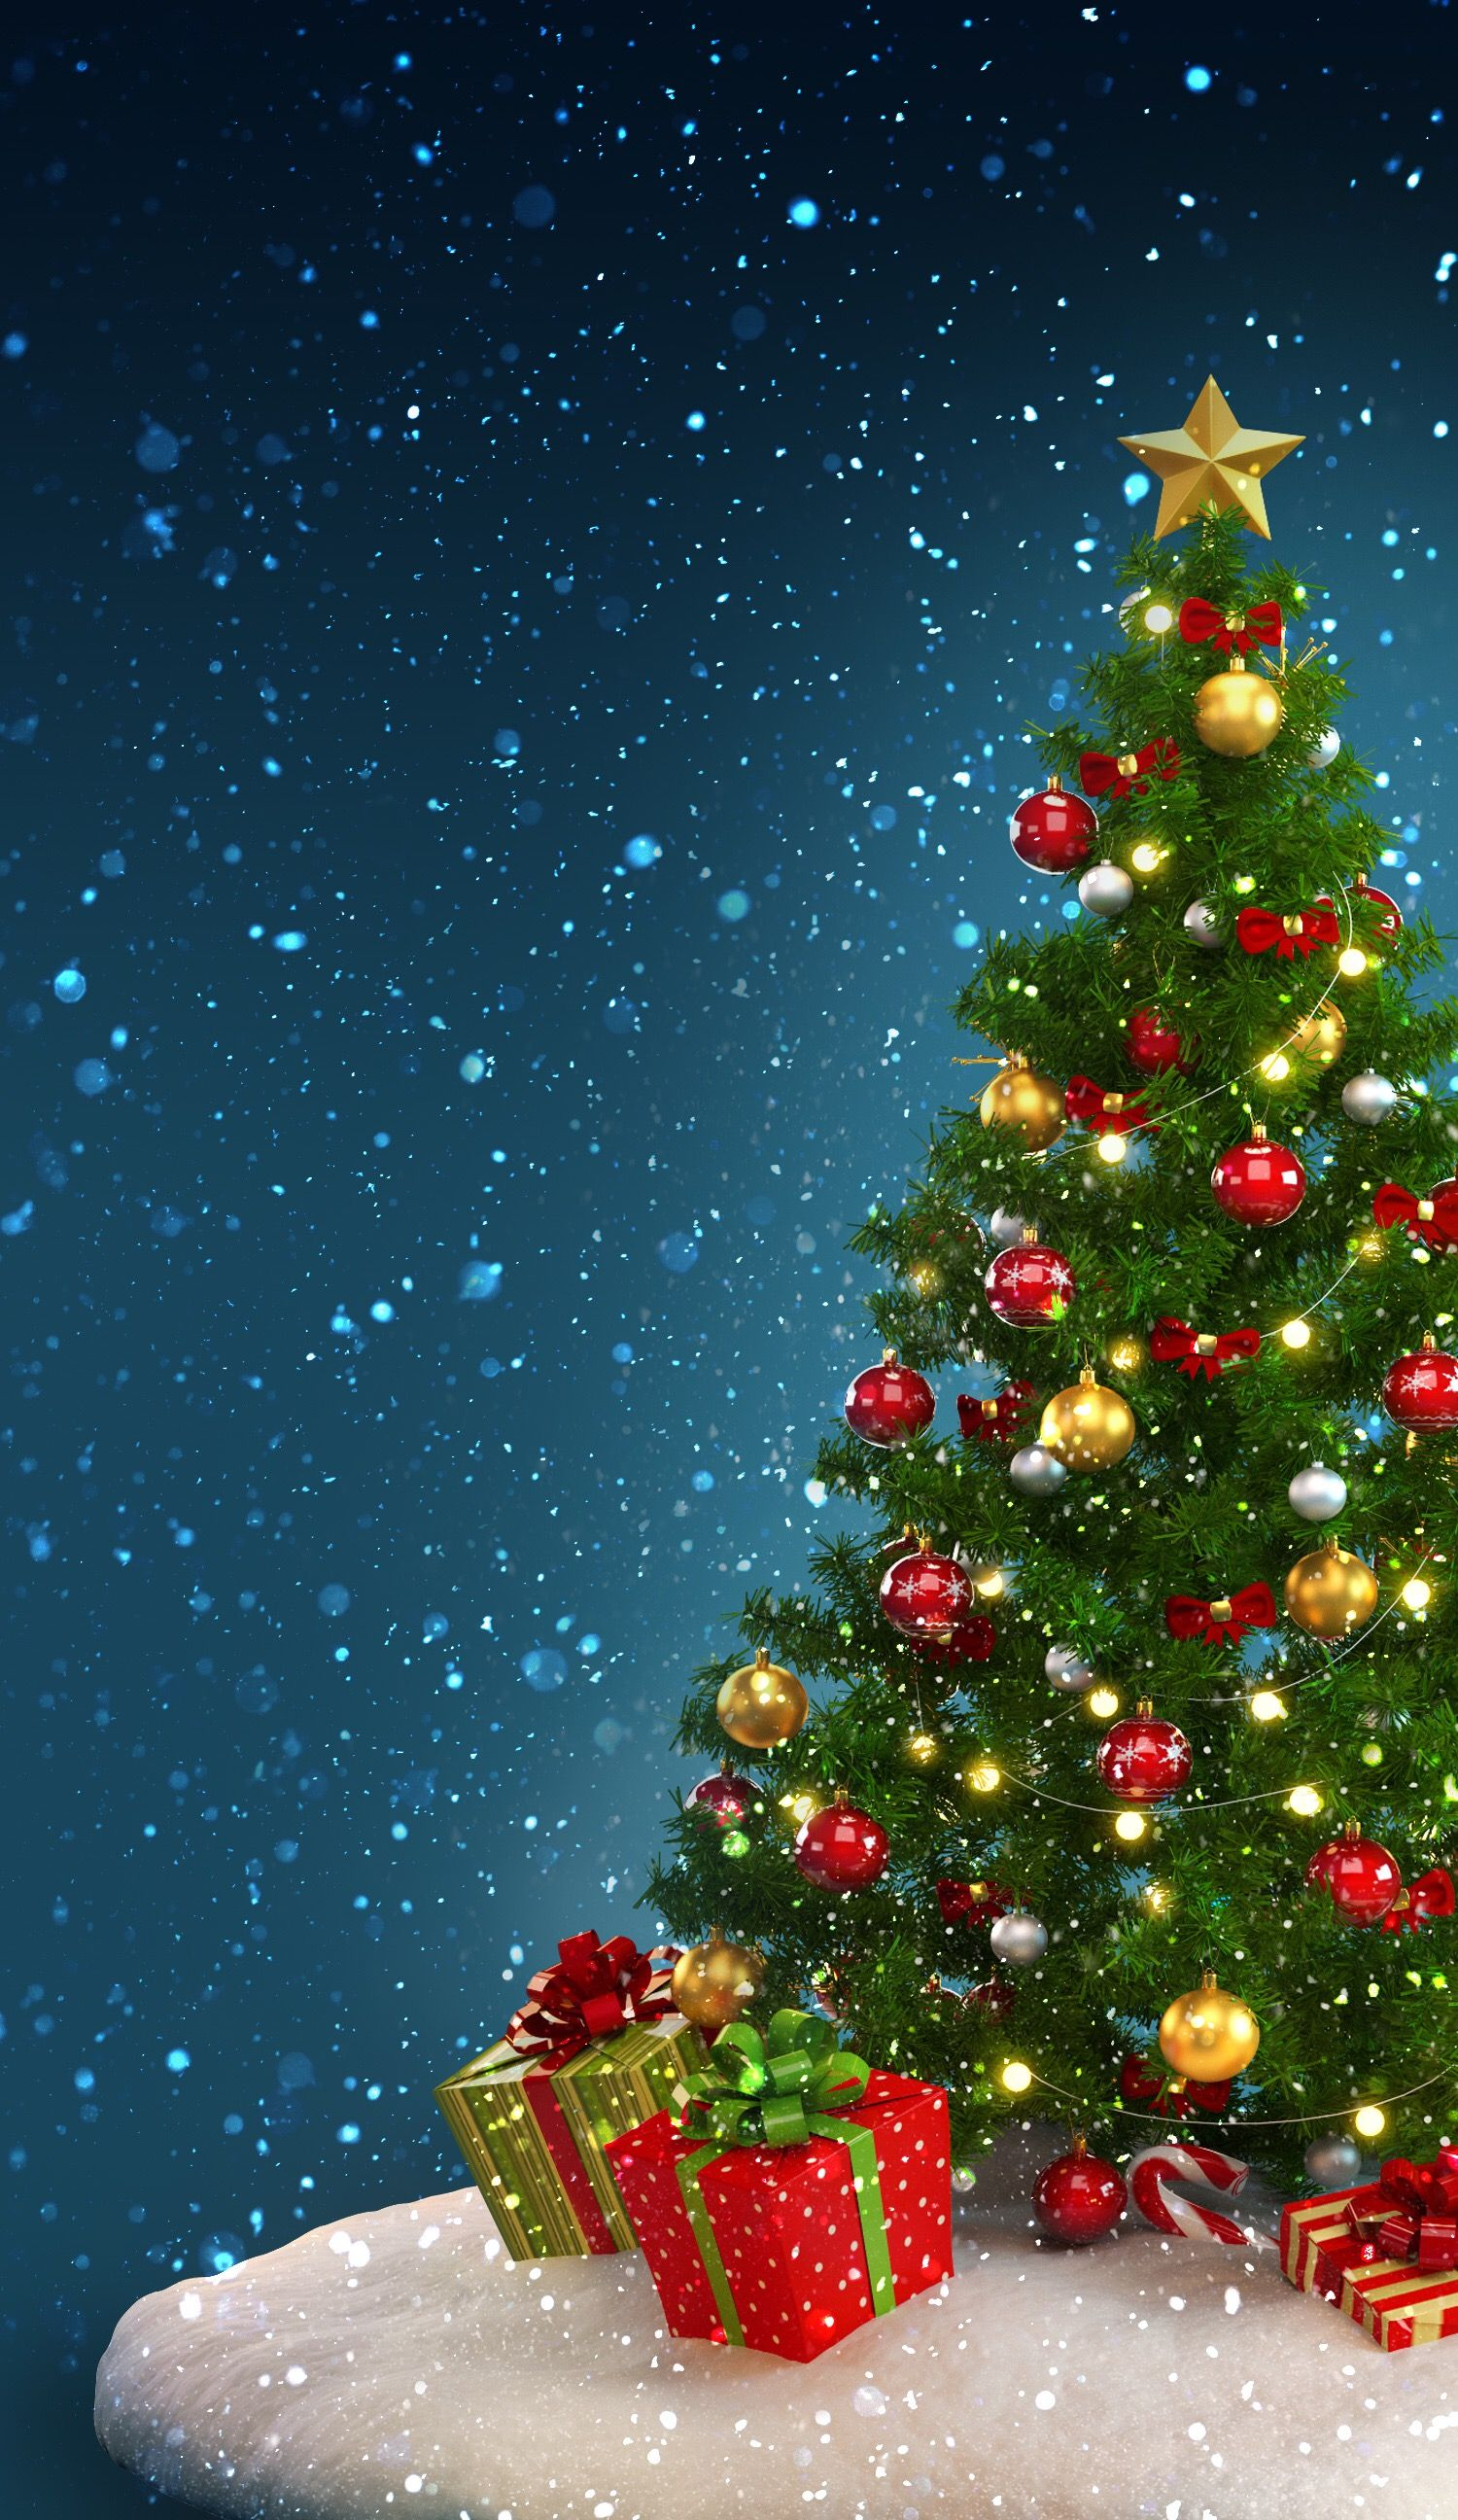 Christmas Tree Backgrounds.Christmas Tree Wallpaper Wallpapers Navidad Invitaciones